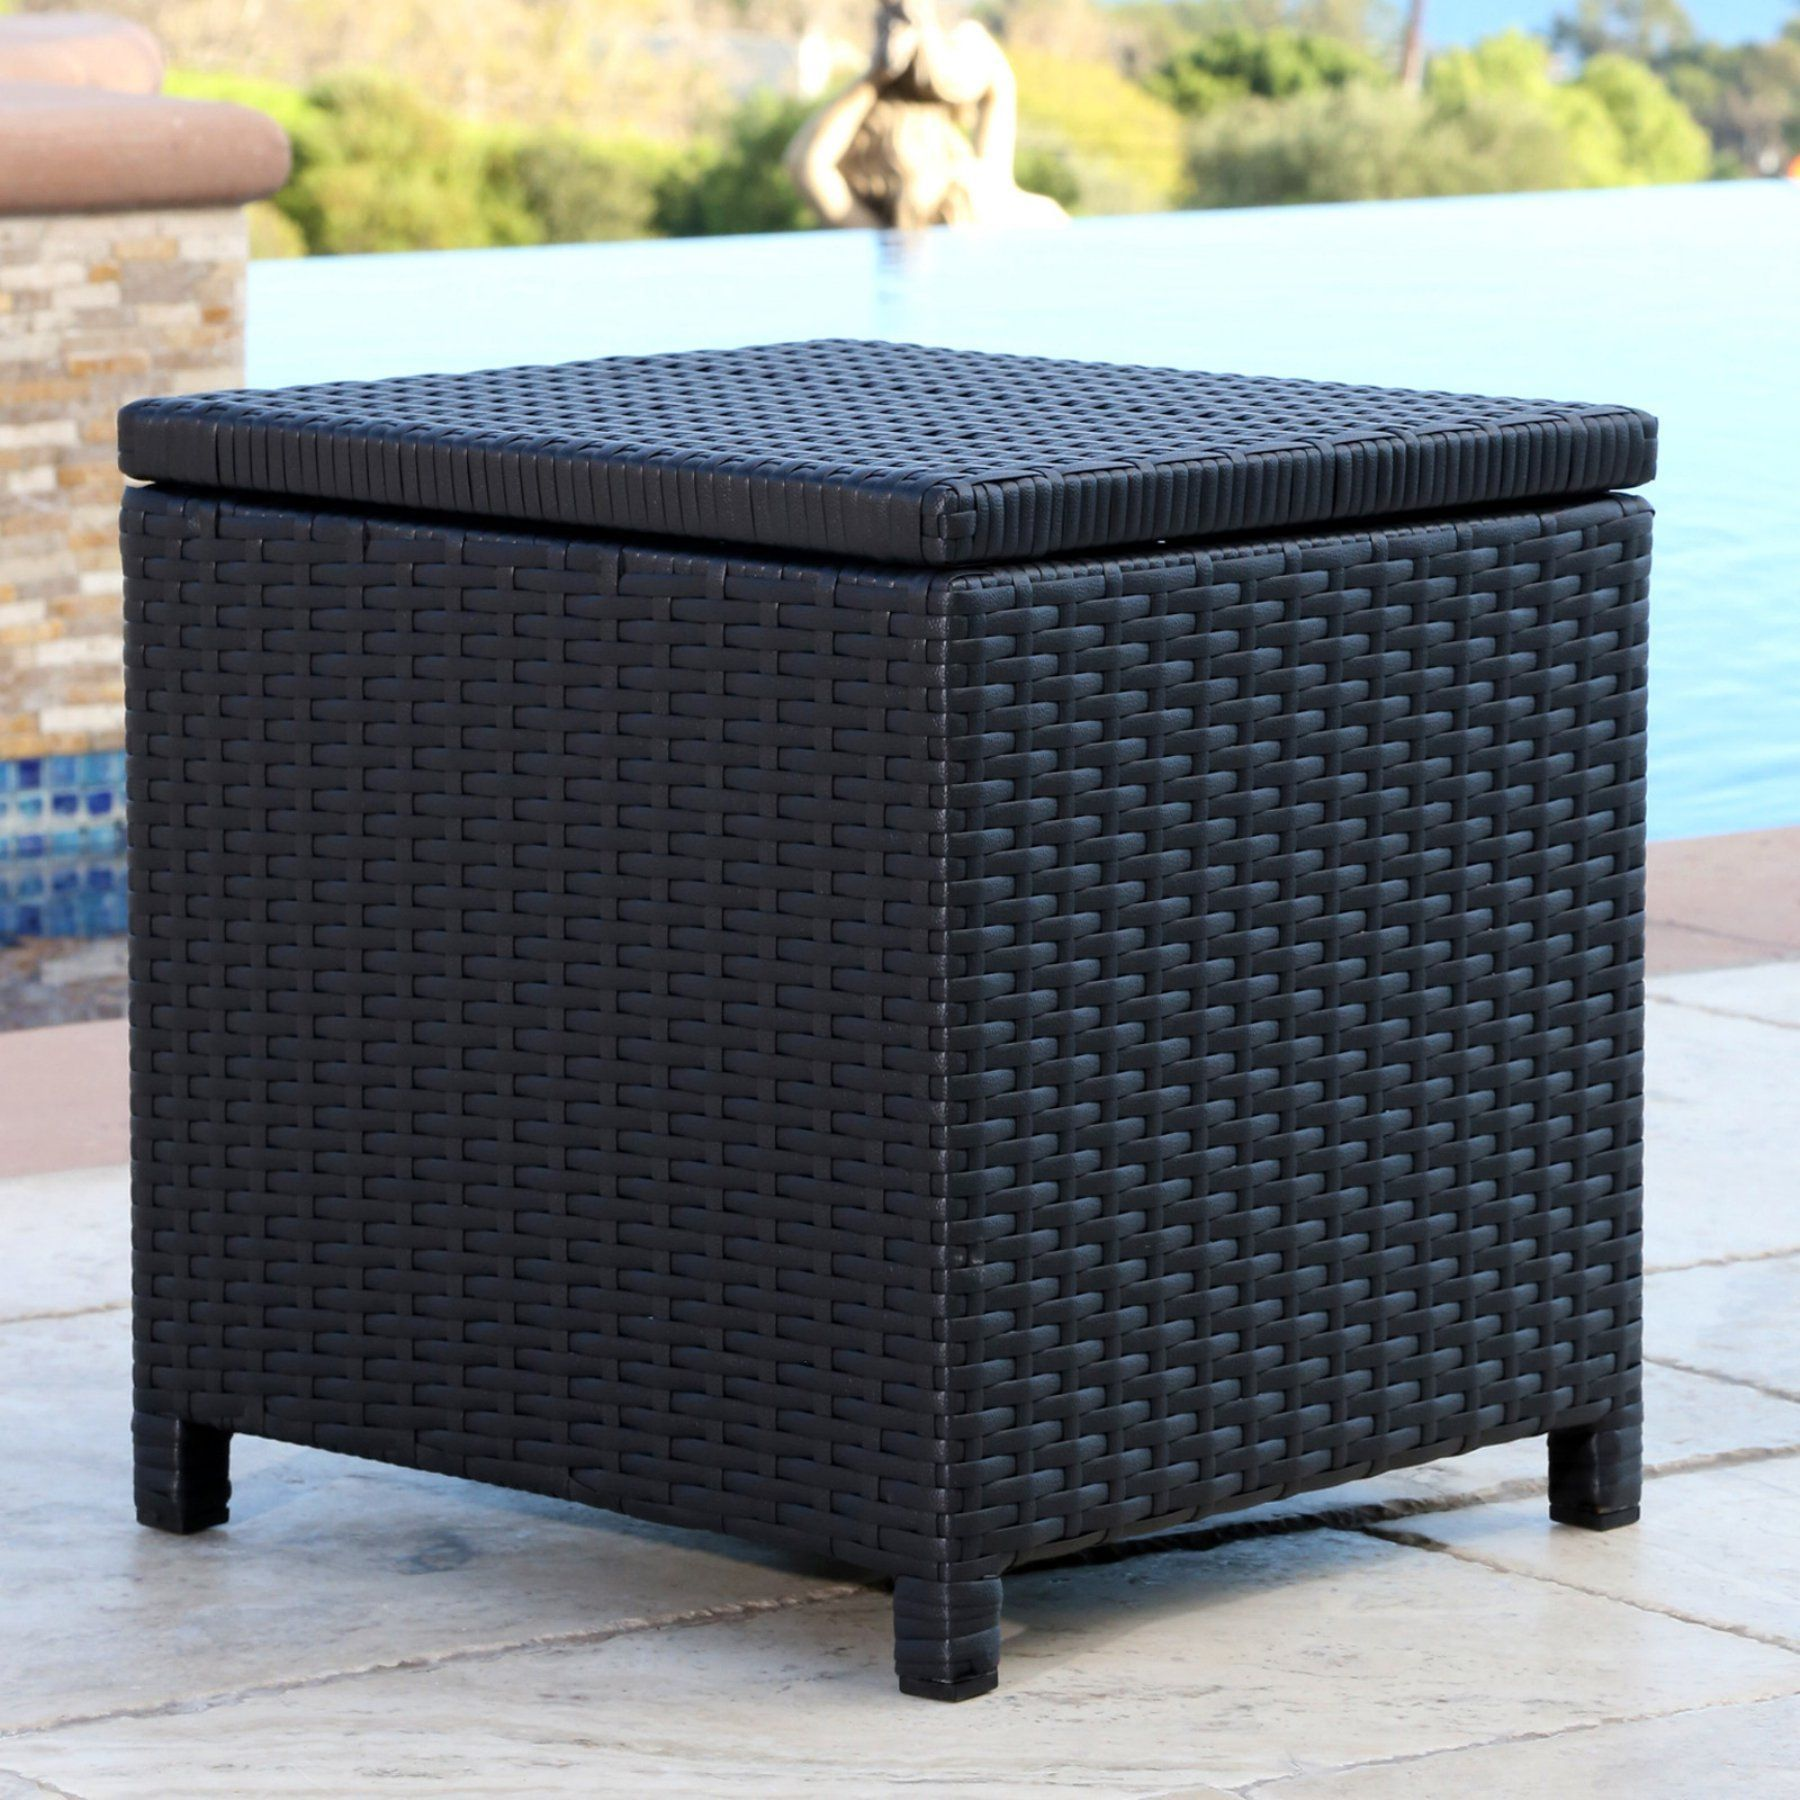 abbyson chase outdoor wicker storage ottoman products rh pinterest cl